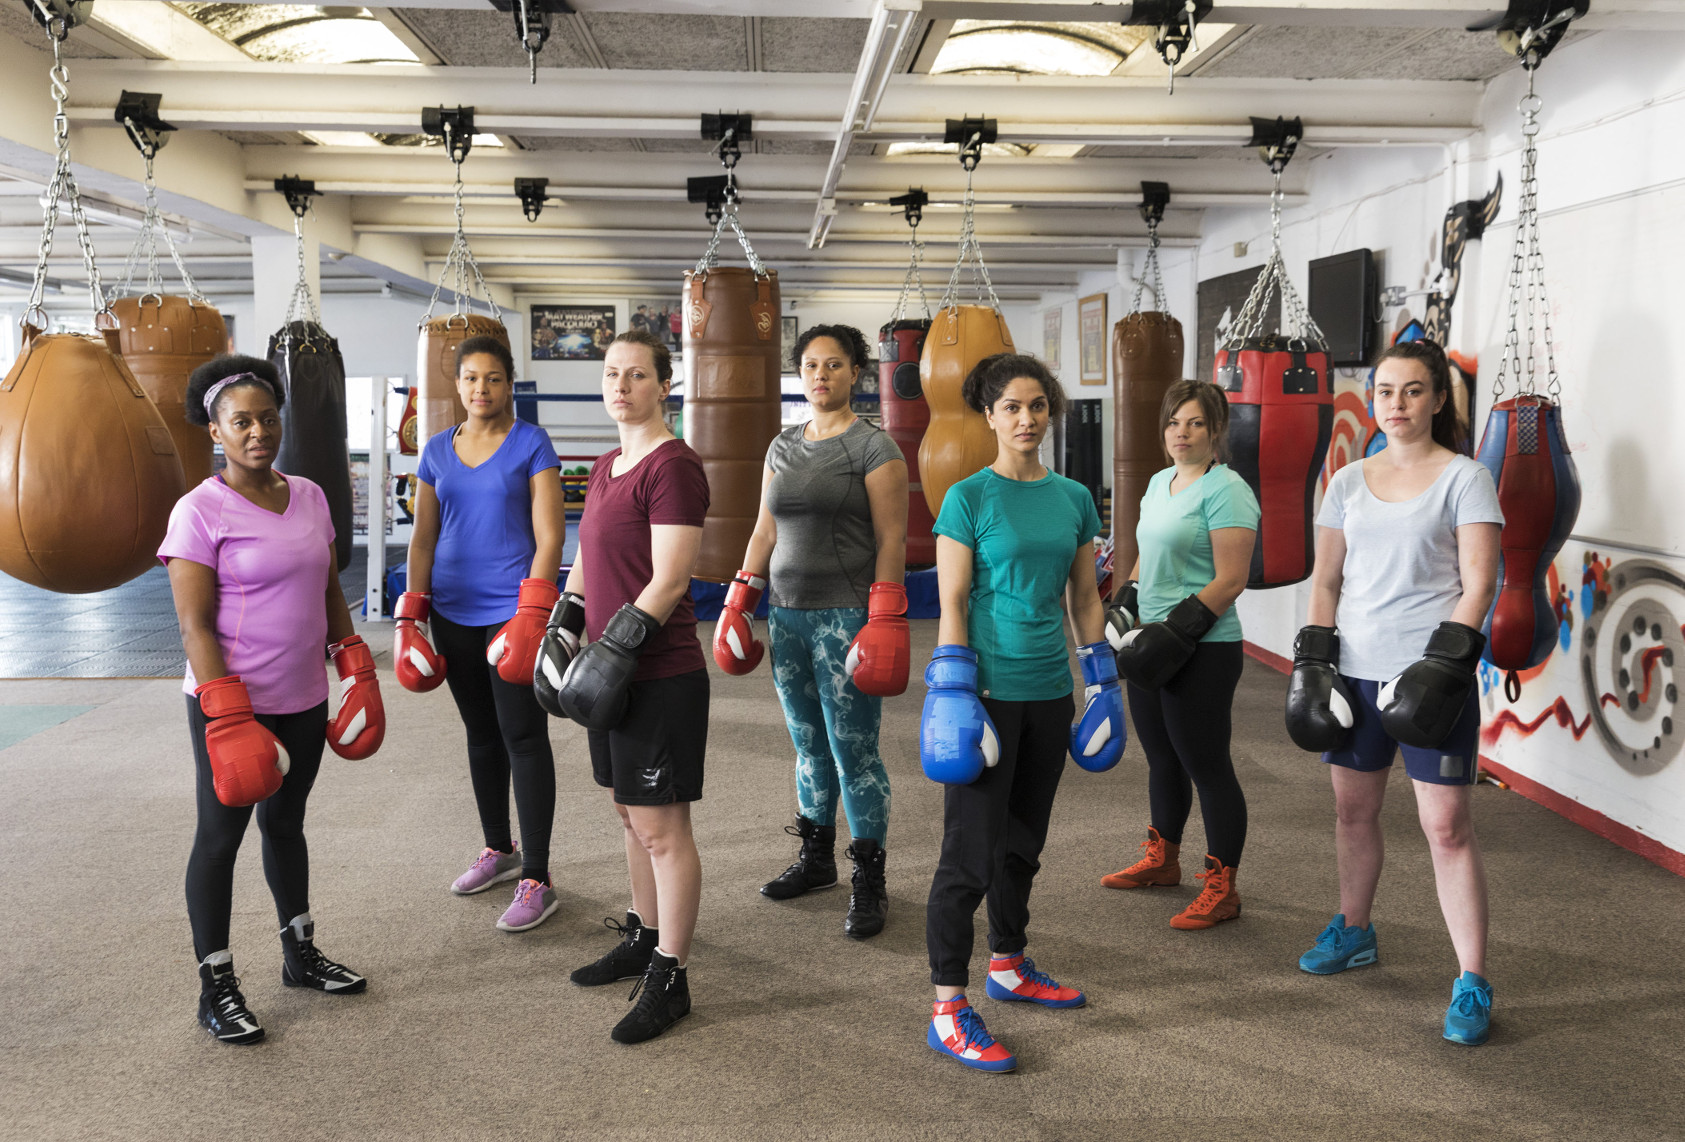 BBC Oneness, Womens Boxing, Photographer: Martin Parr